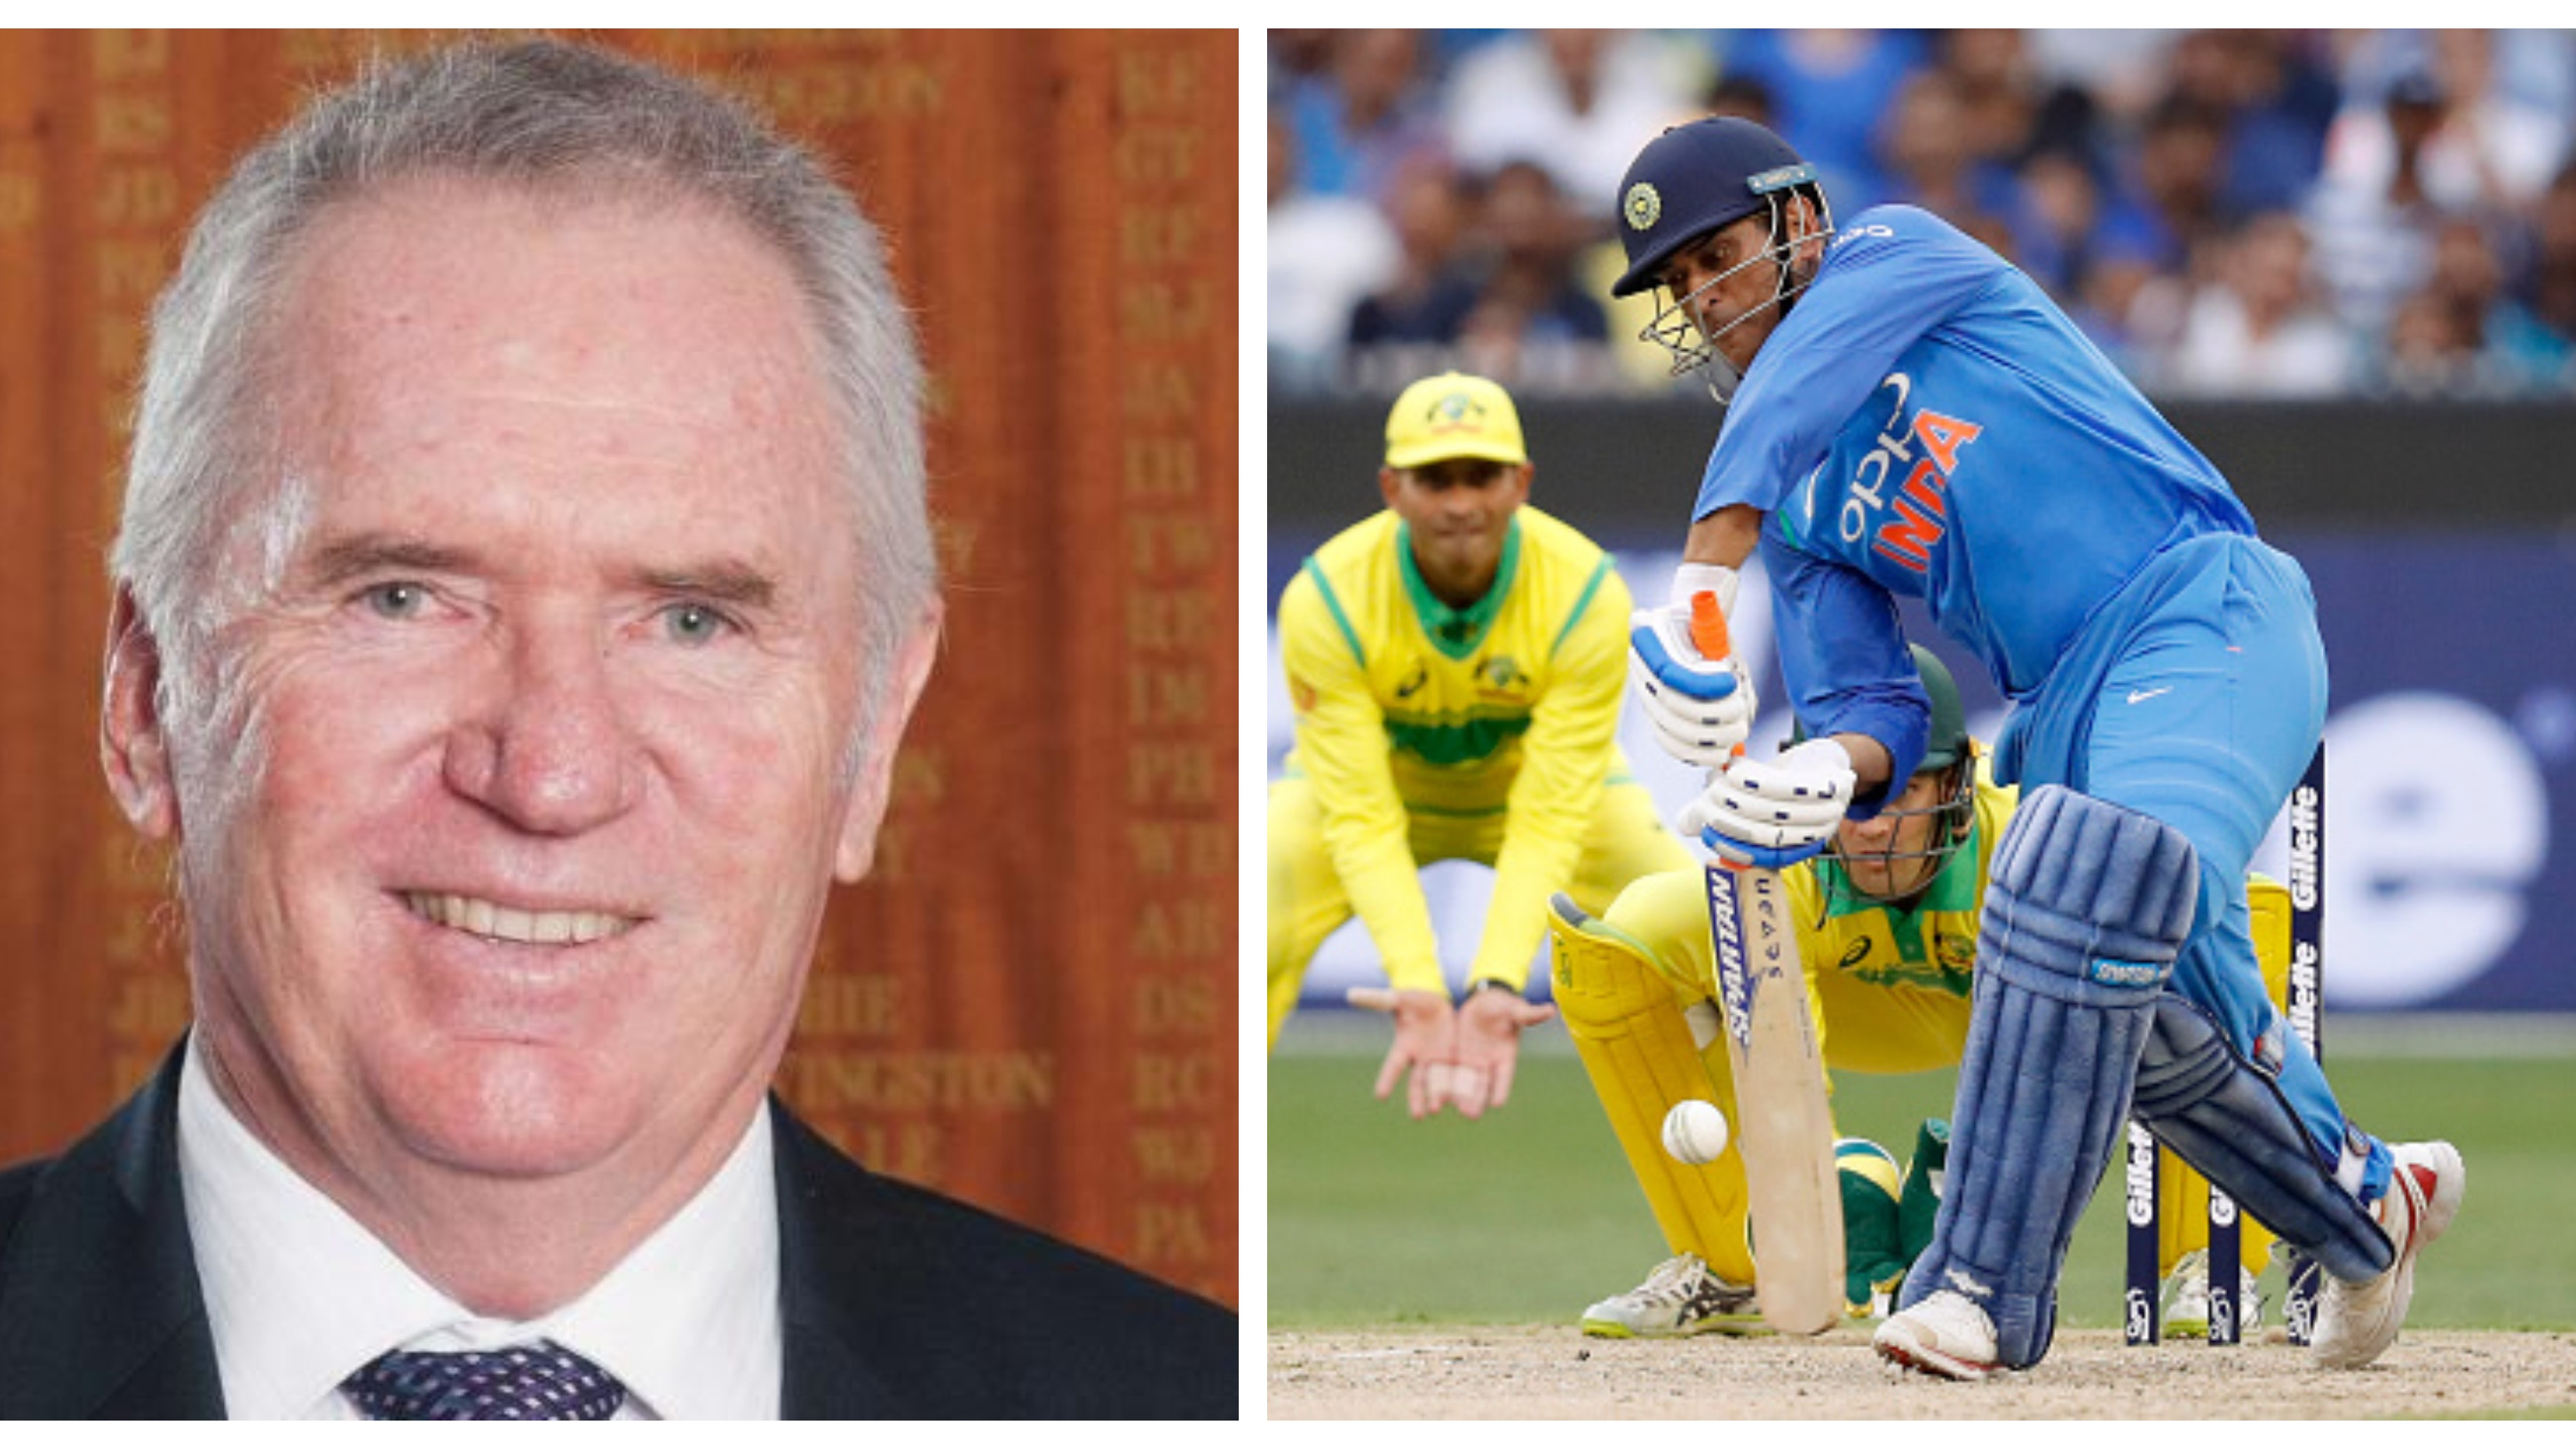 AUS v IND 2018-19: MS Dhoni is back with a vengeance, says Allan Border